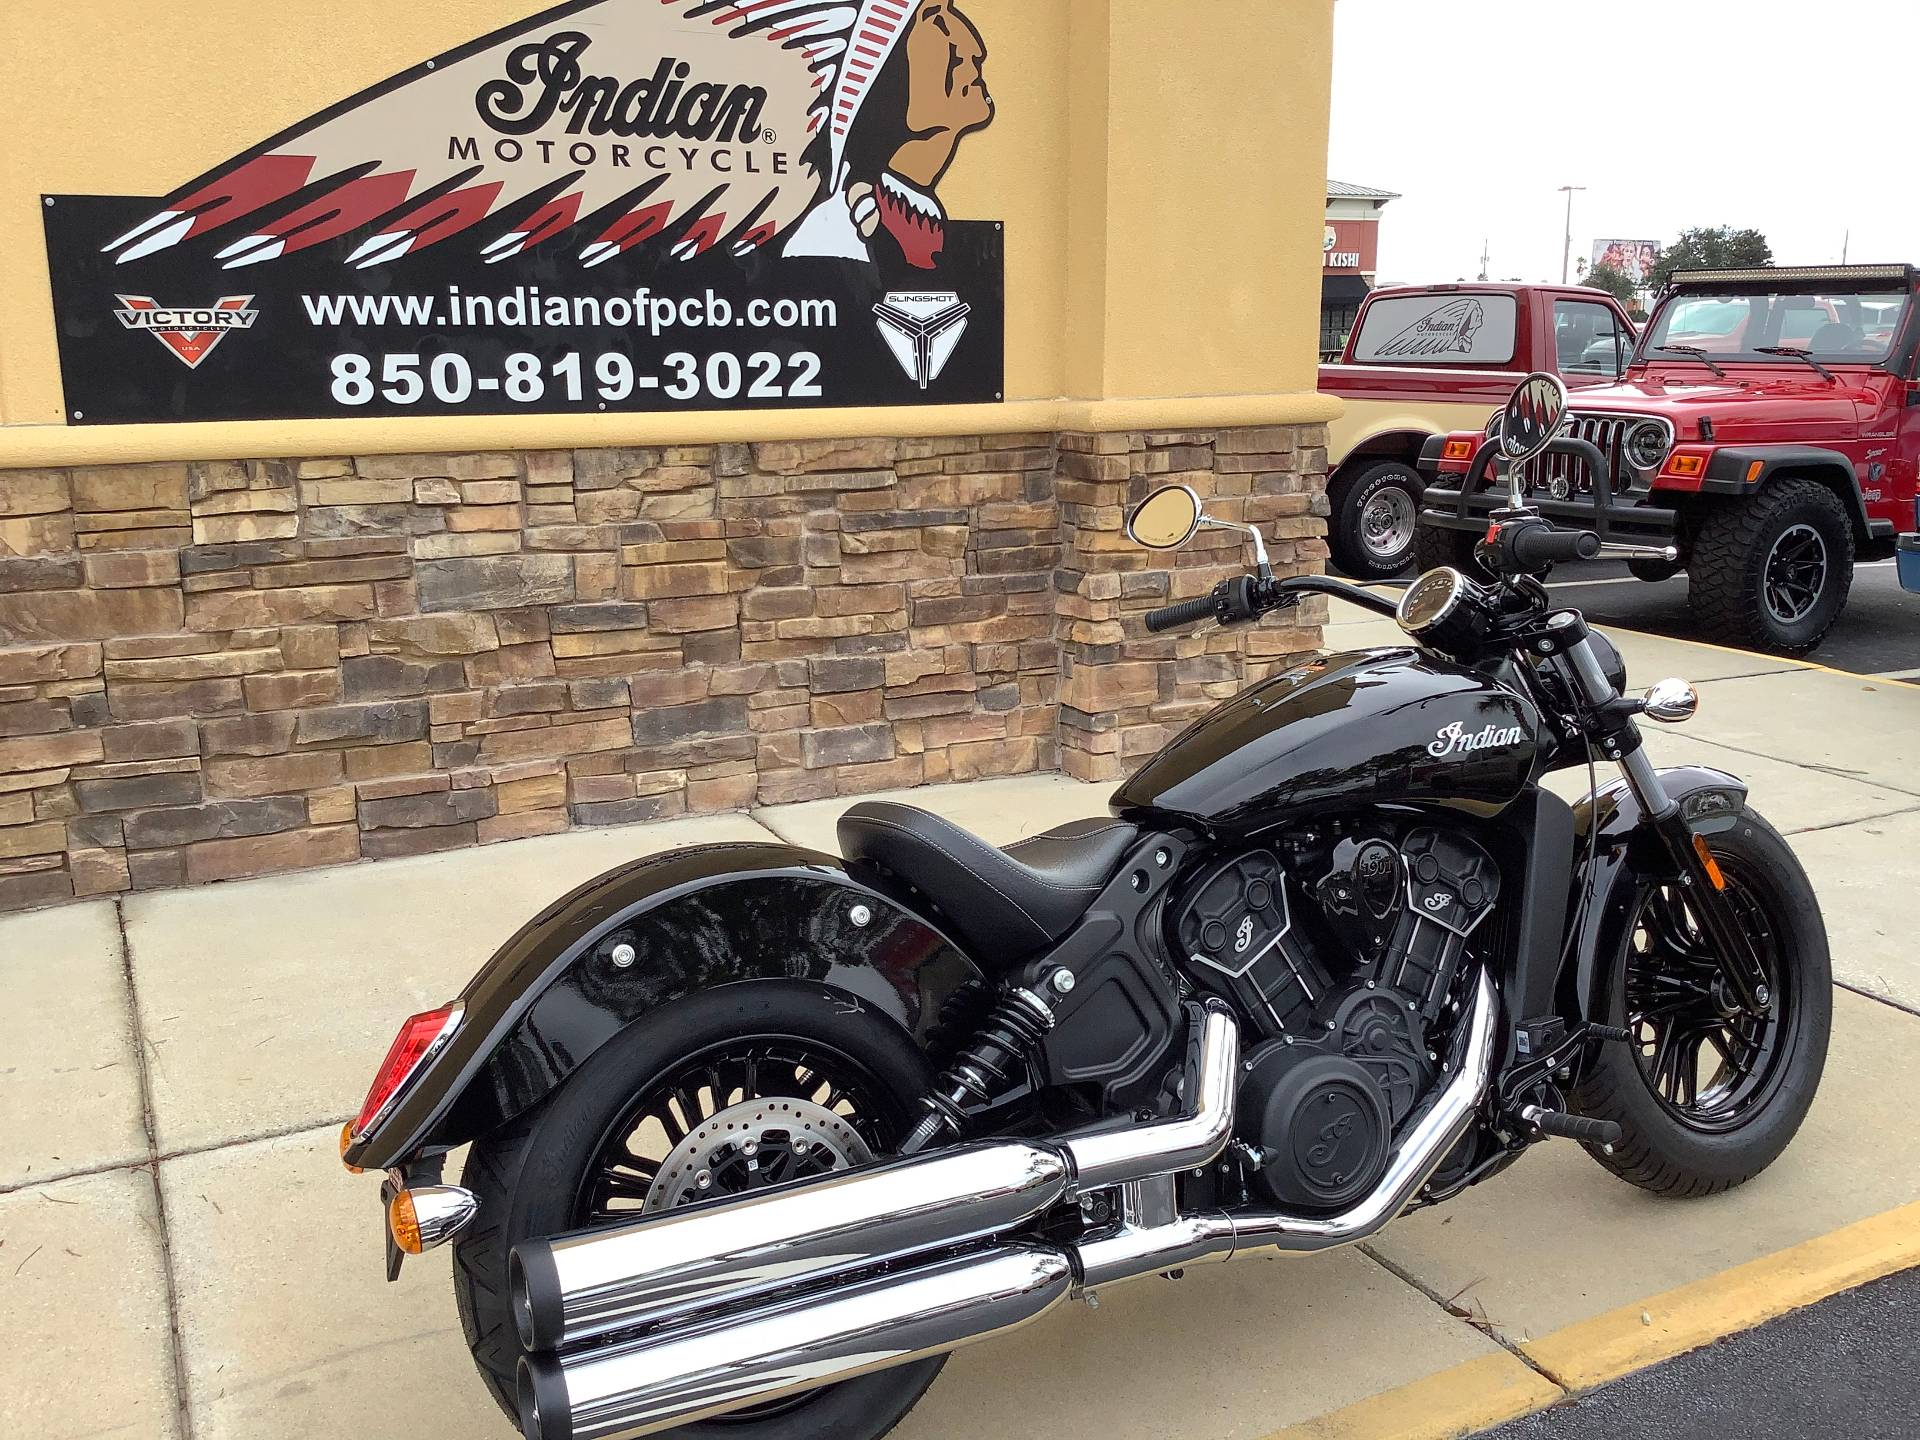 2021 Indian SCOUT 60 in Panama City Beach, Florida - Photo 6